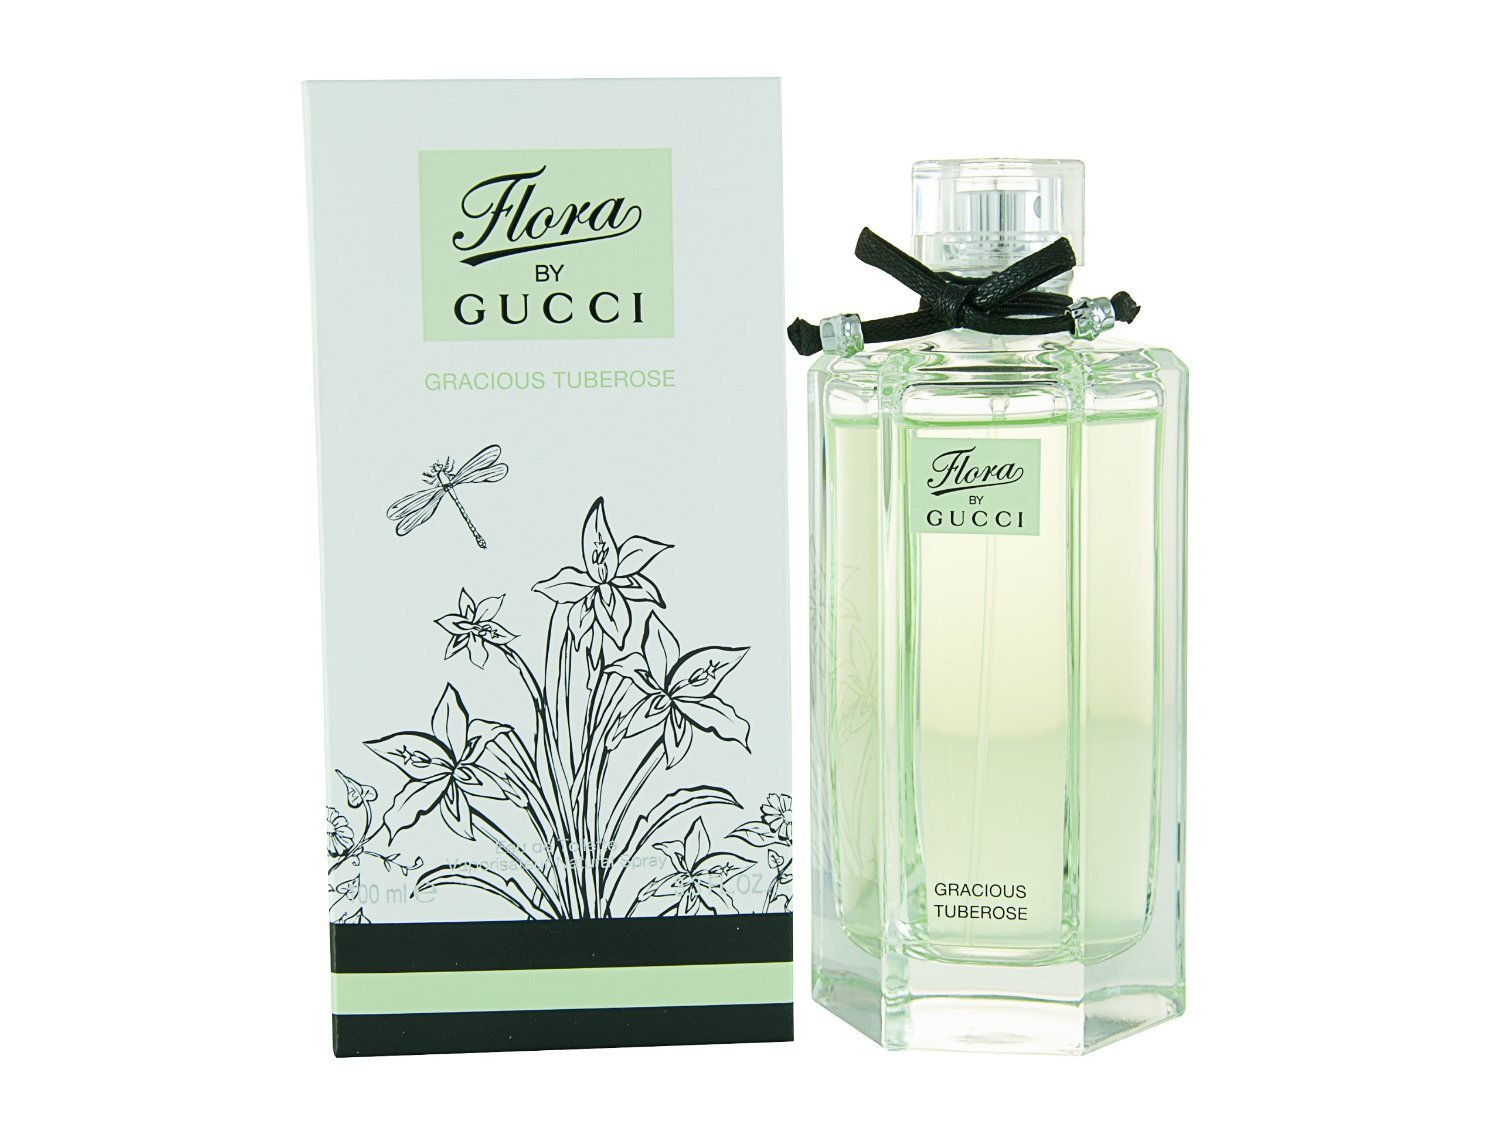 Туалетная вода Gucci Flora By Gucci Gracious Tuberose 100ml тестер фото